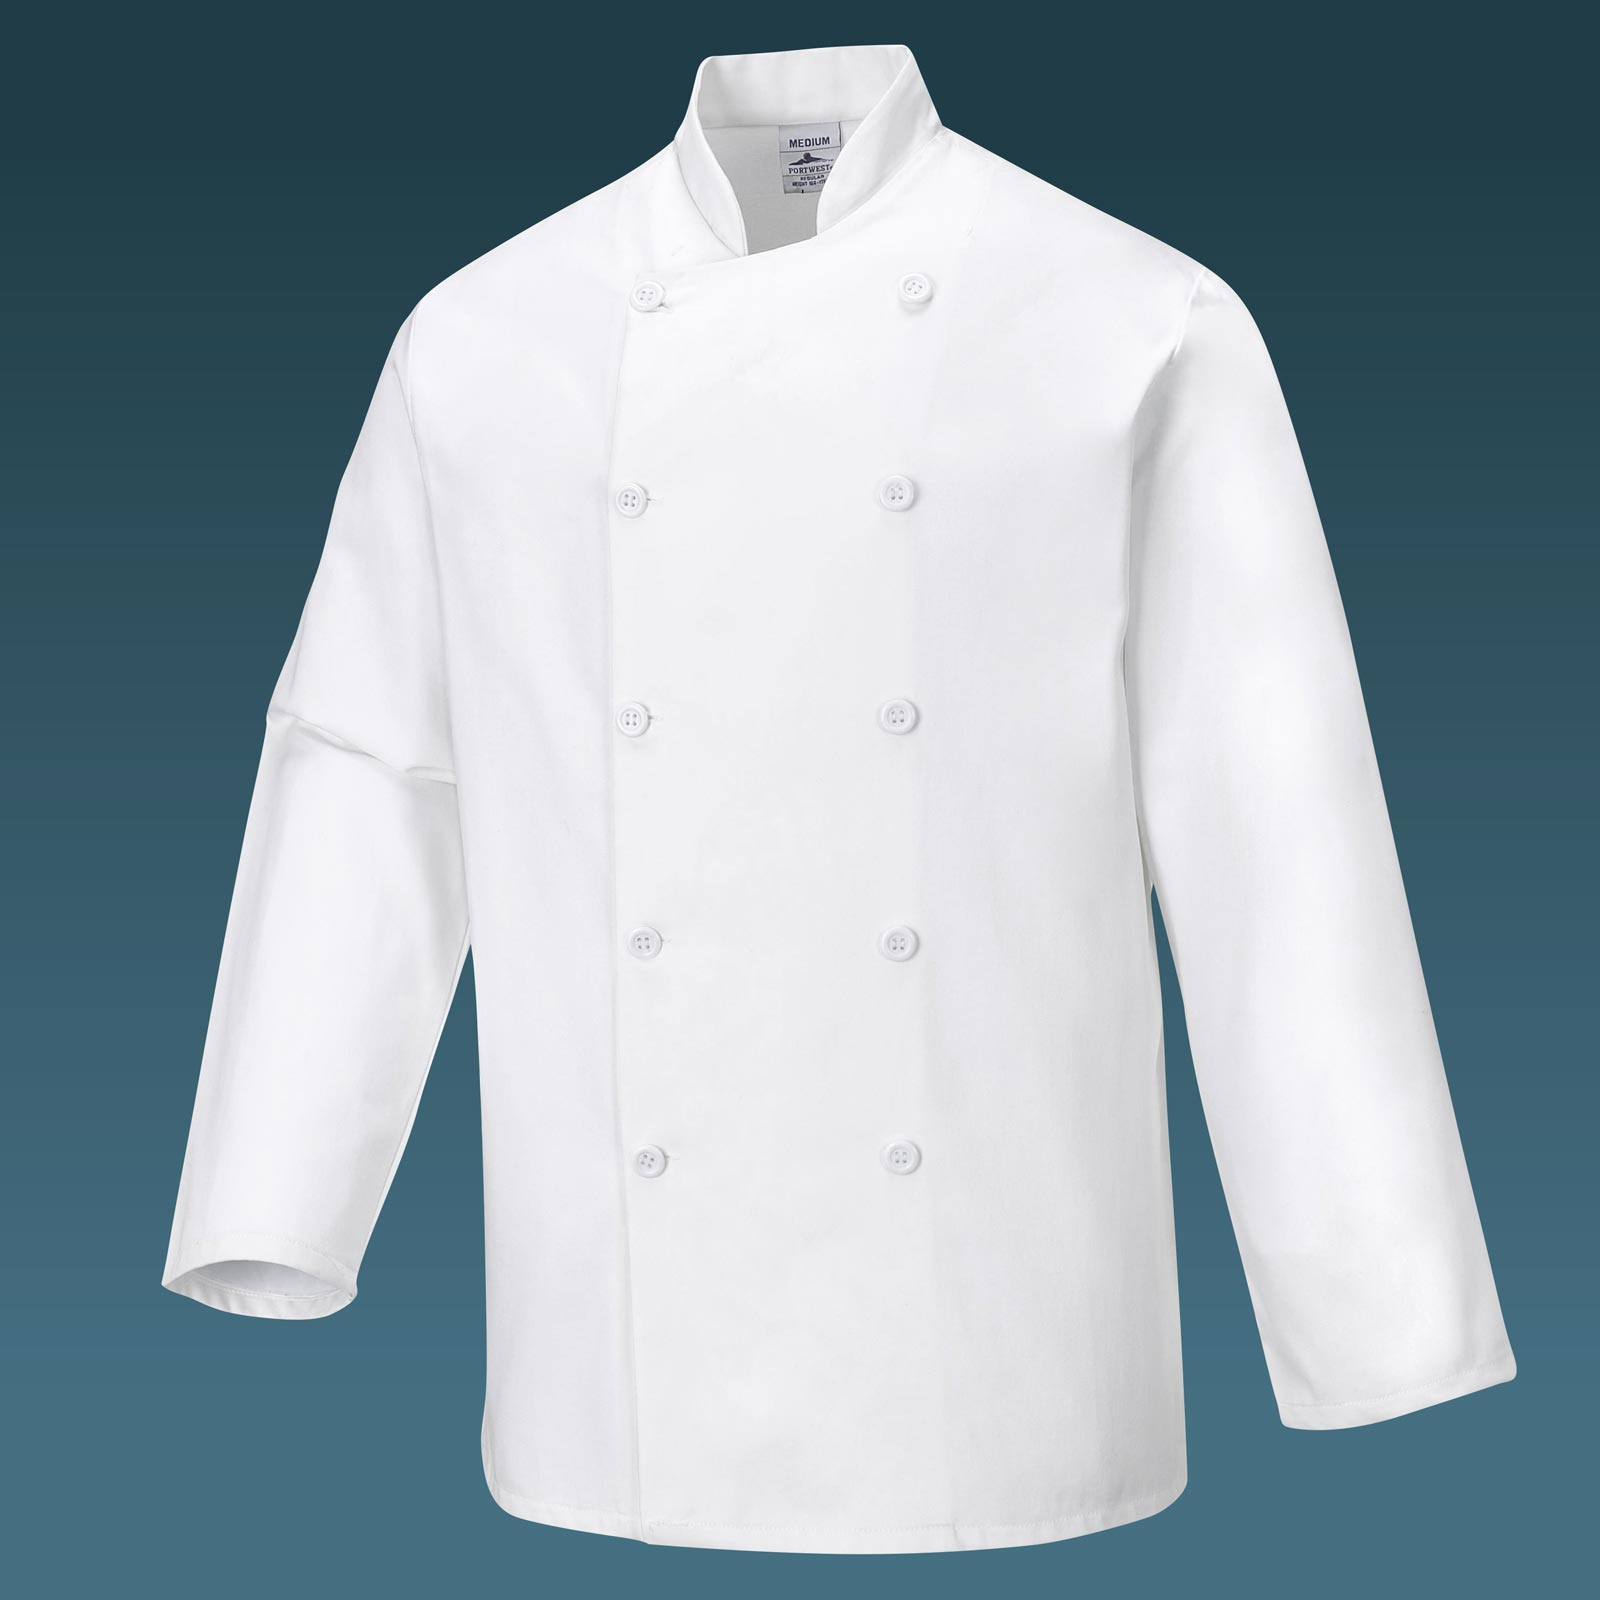 280gsm Sussex Chefs Jacket - C836